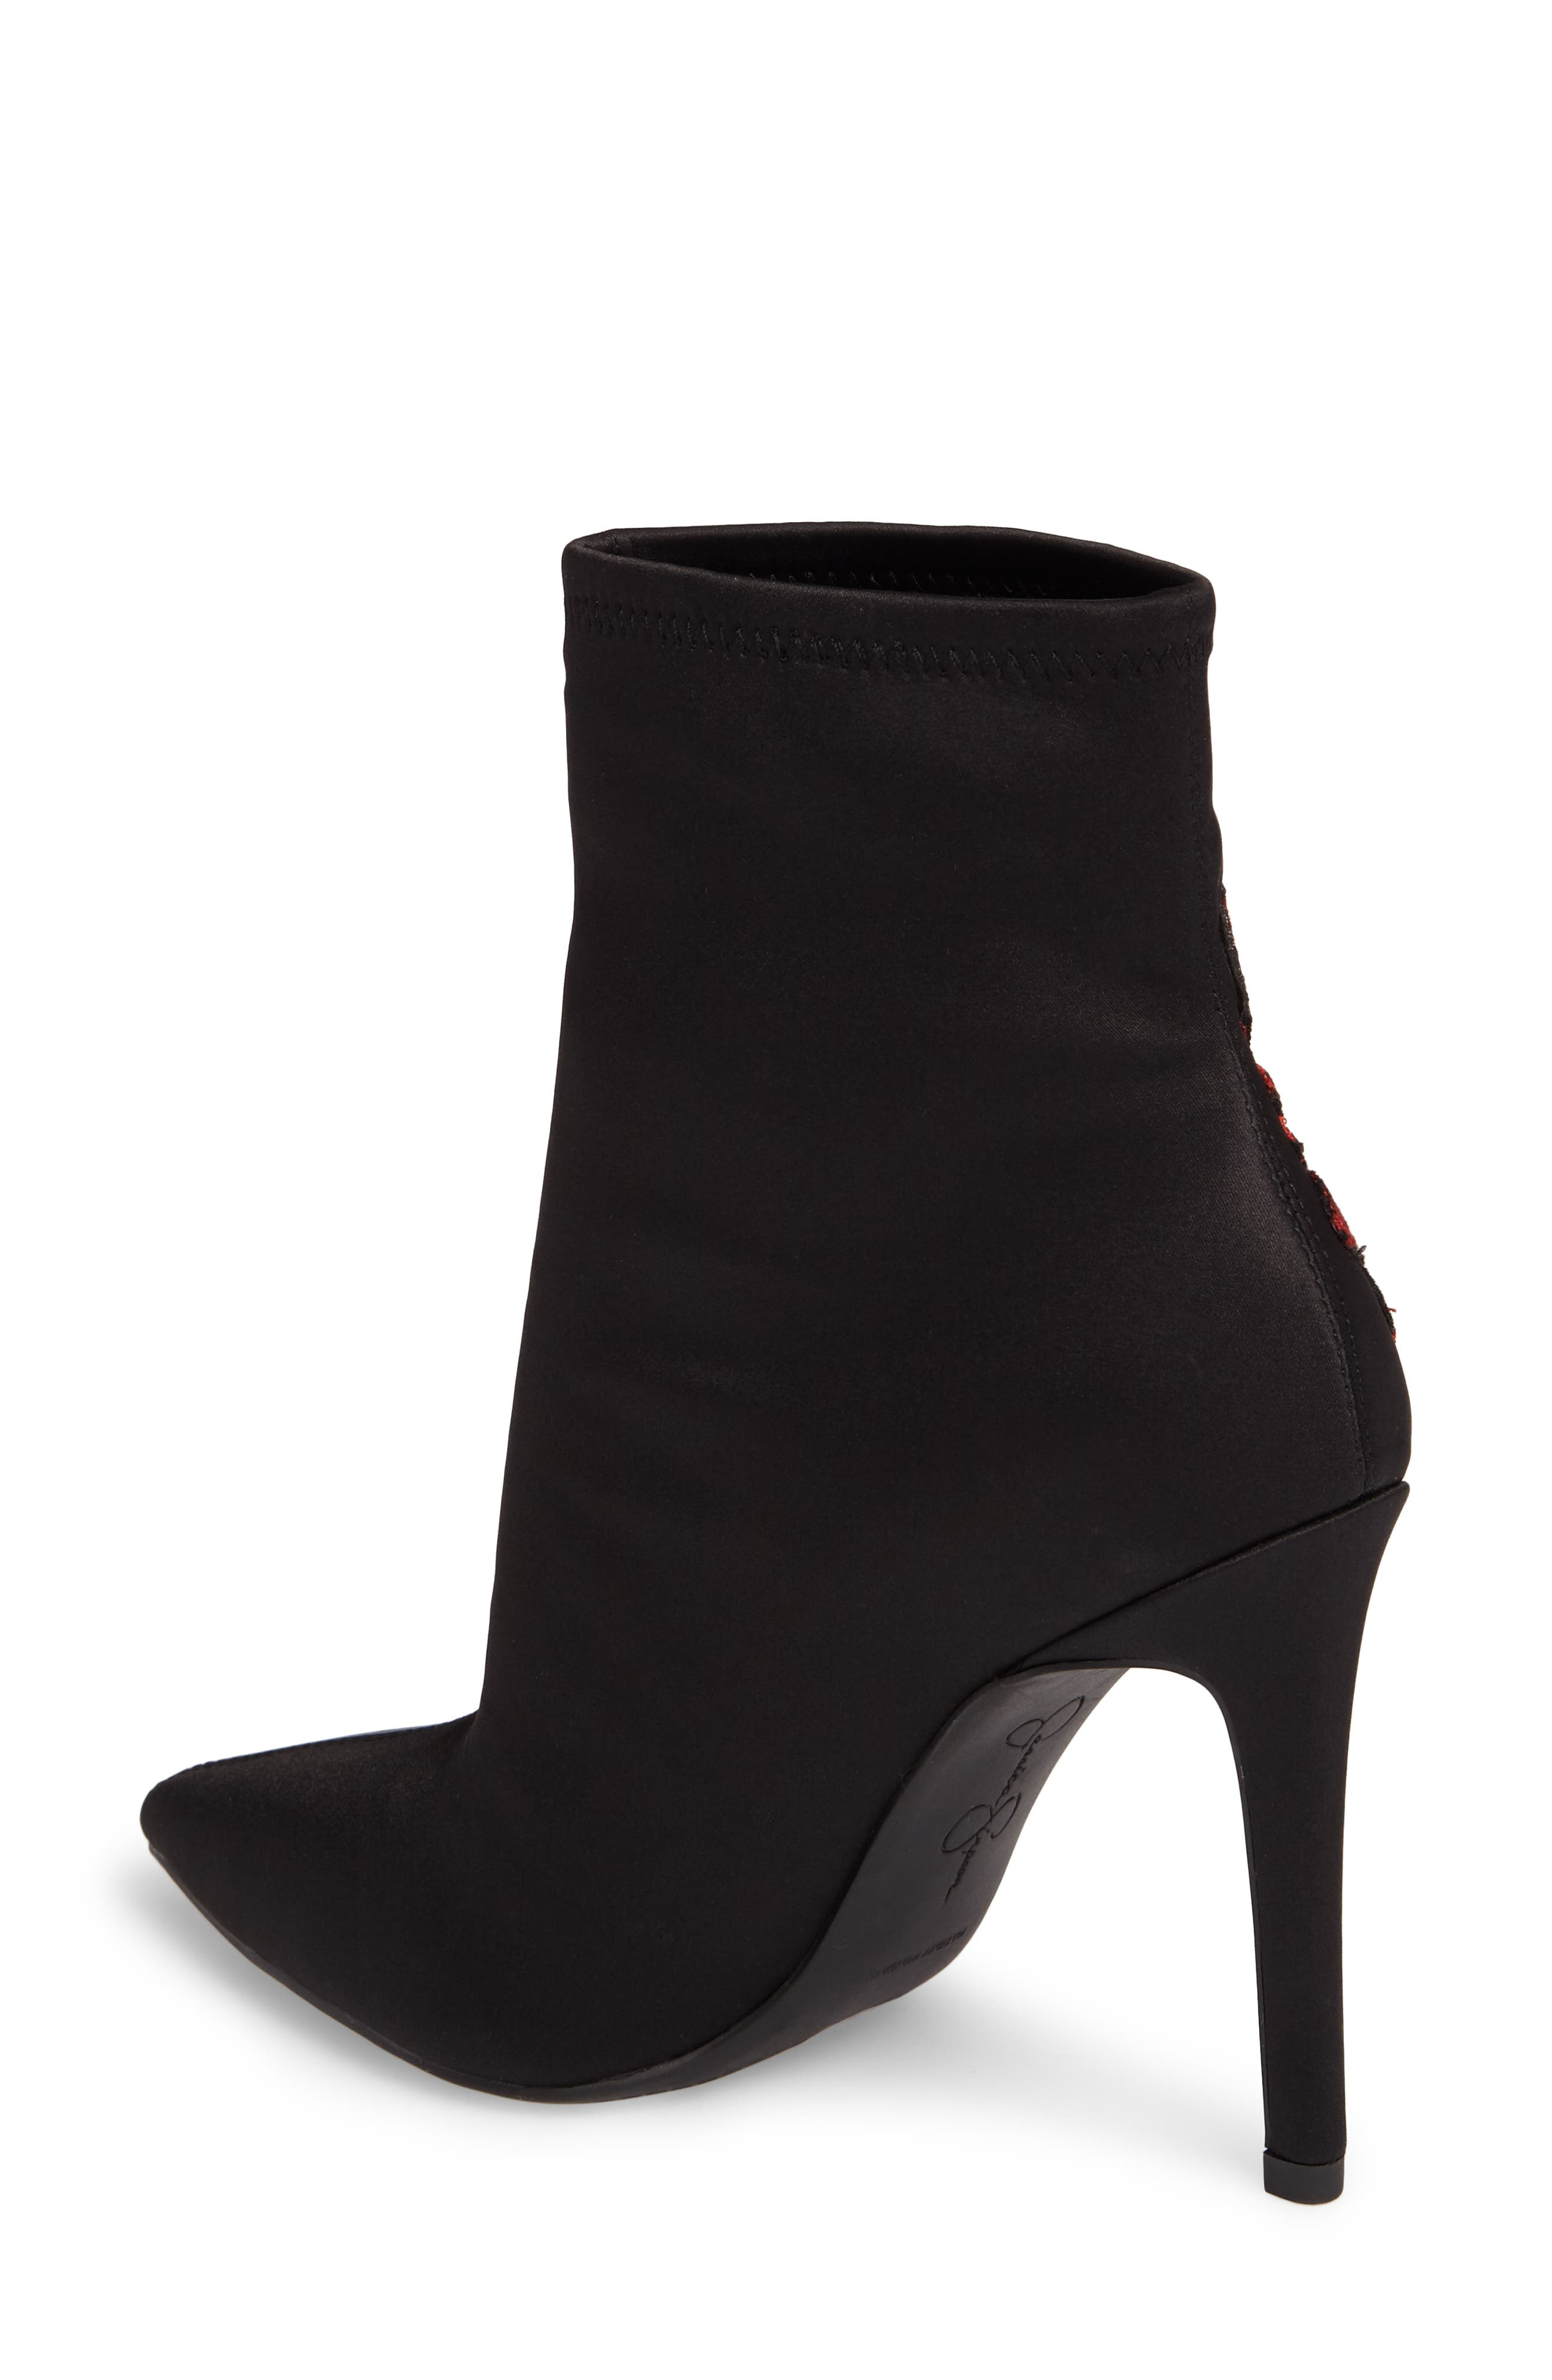 Pelanna Appliqué Stretch Bootie,                             Alternate thumbnail 2, color,                             001